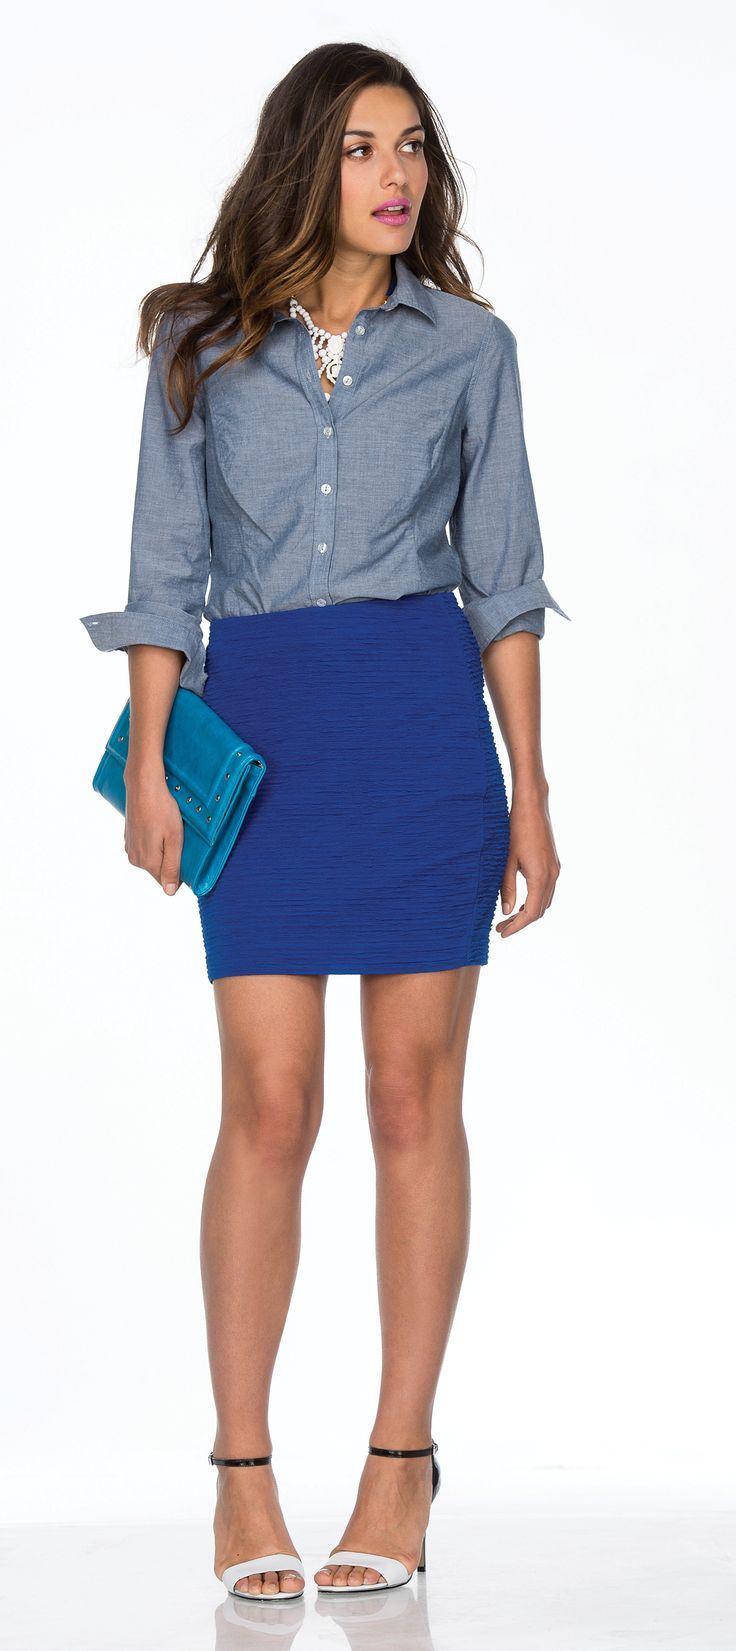 Ricki's: 10 Items 10 Ways - love the shirt dressed up with a skirt, but maybe too much blue on blue for me?